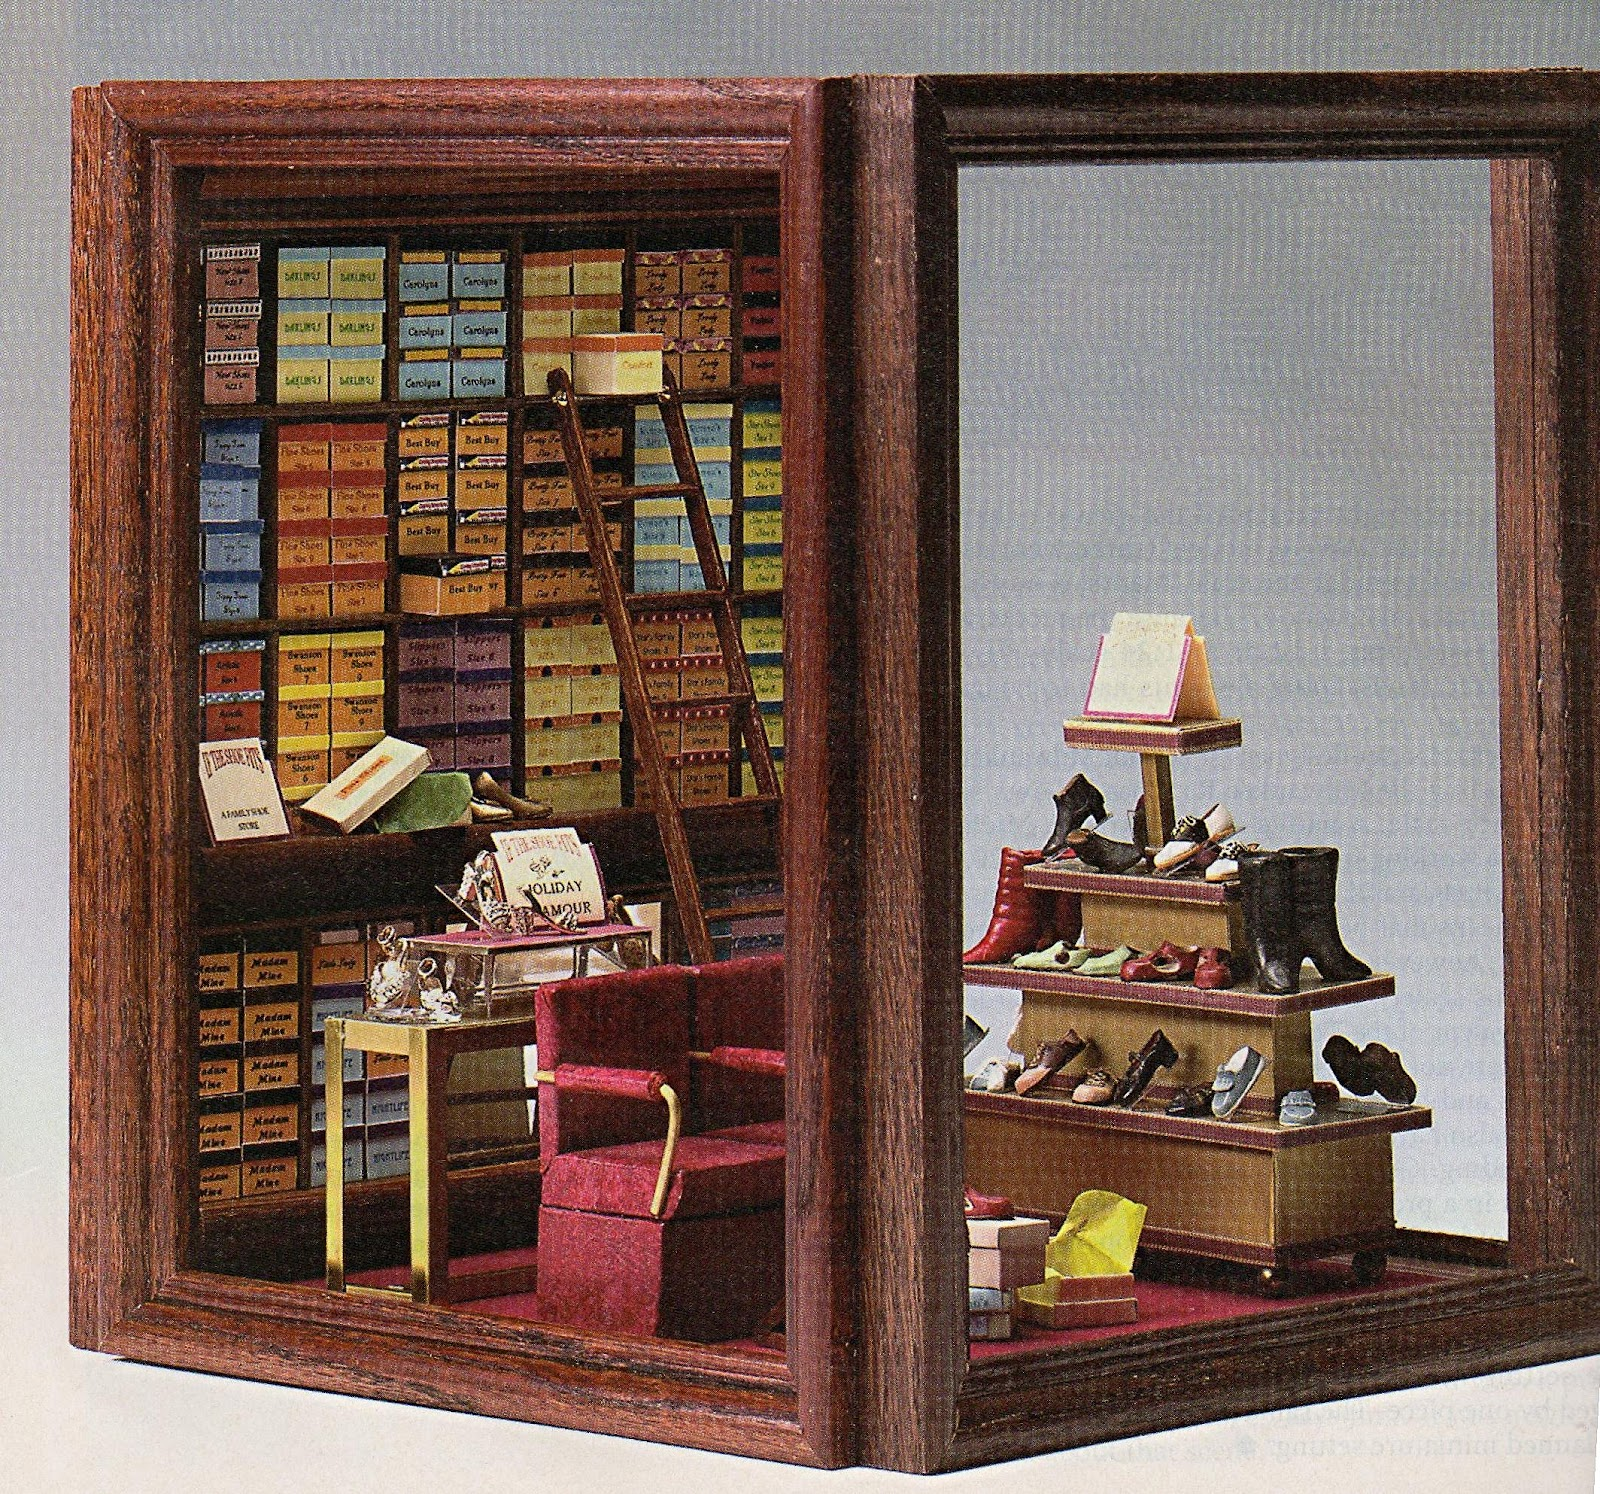 Diy Wooden Dollhouse Mini Glass Dollhouse Miniature Room: DYI DOLLHOUSE MINIATURES: MAKING ROOMS & DISPLAY BOXES